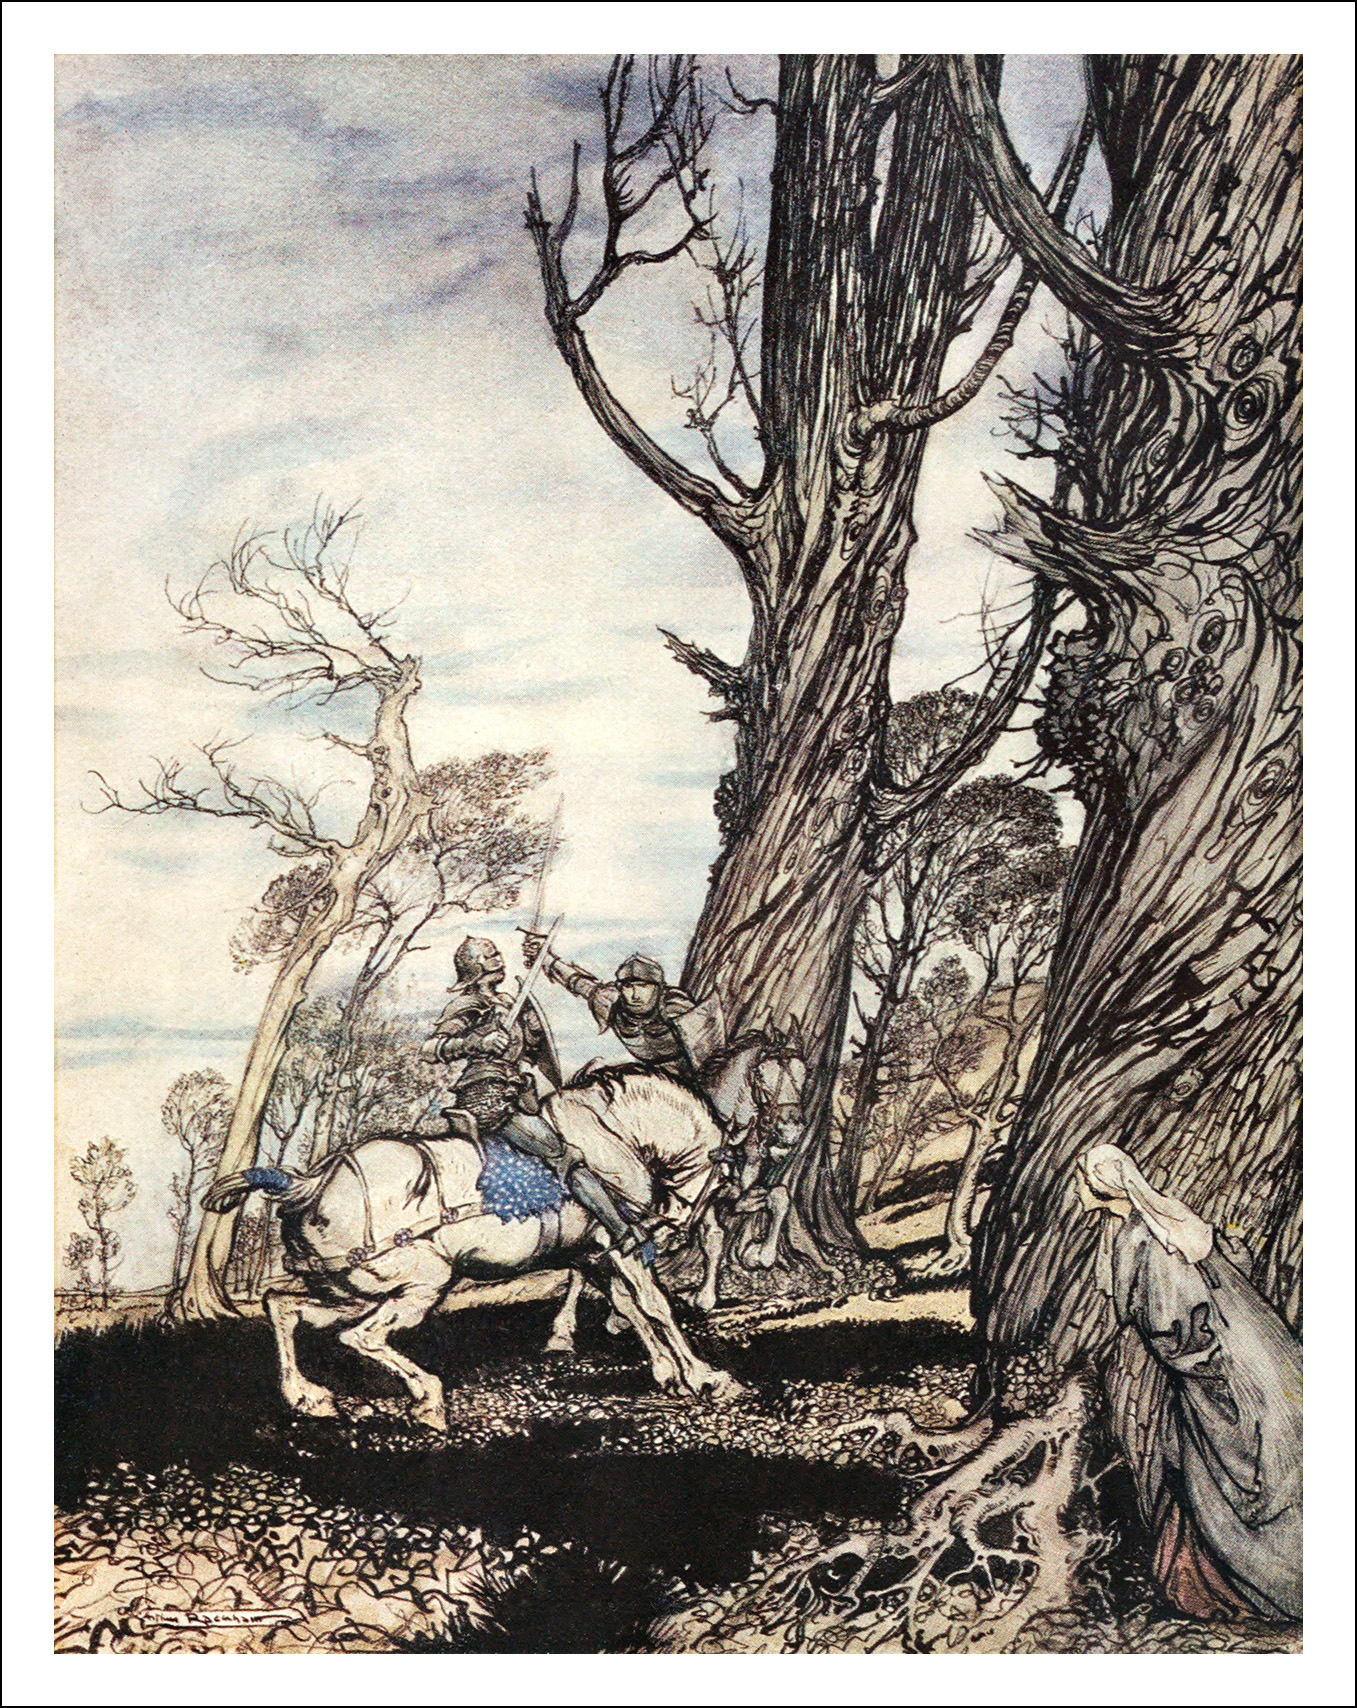 Arthur Rackham, The romance of King Arthur and his knights of the Round Table